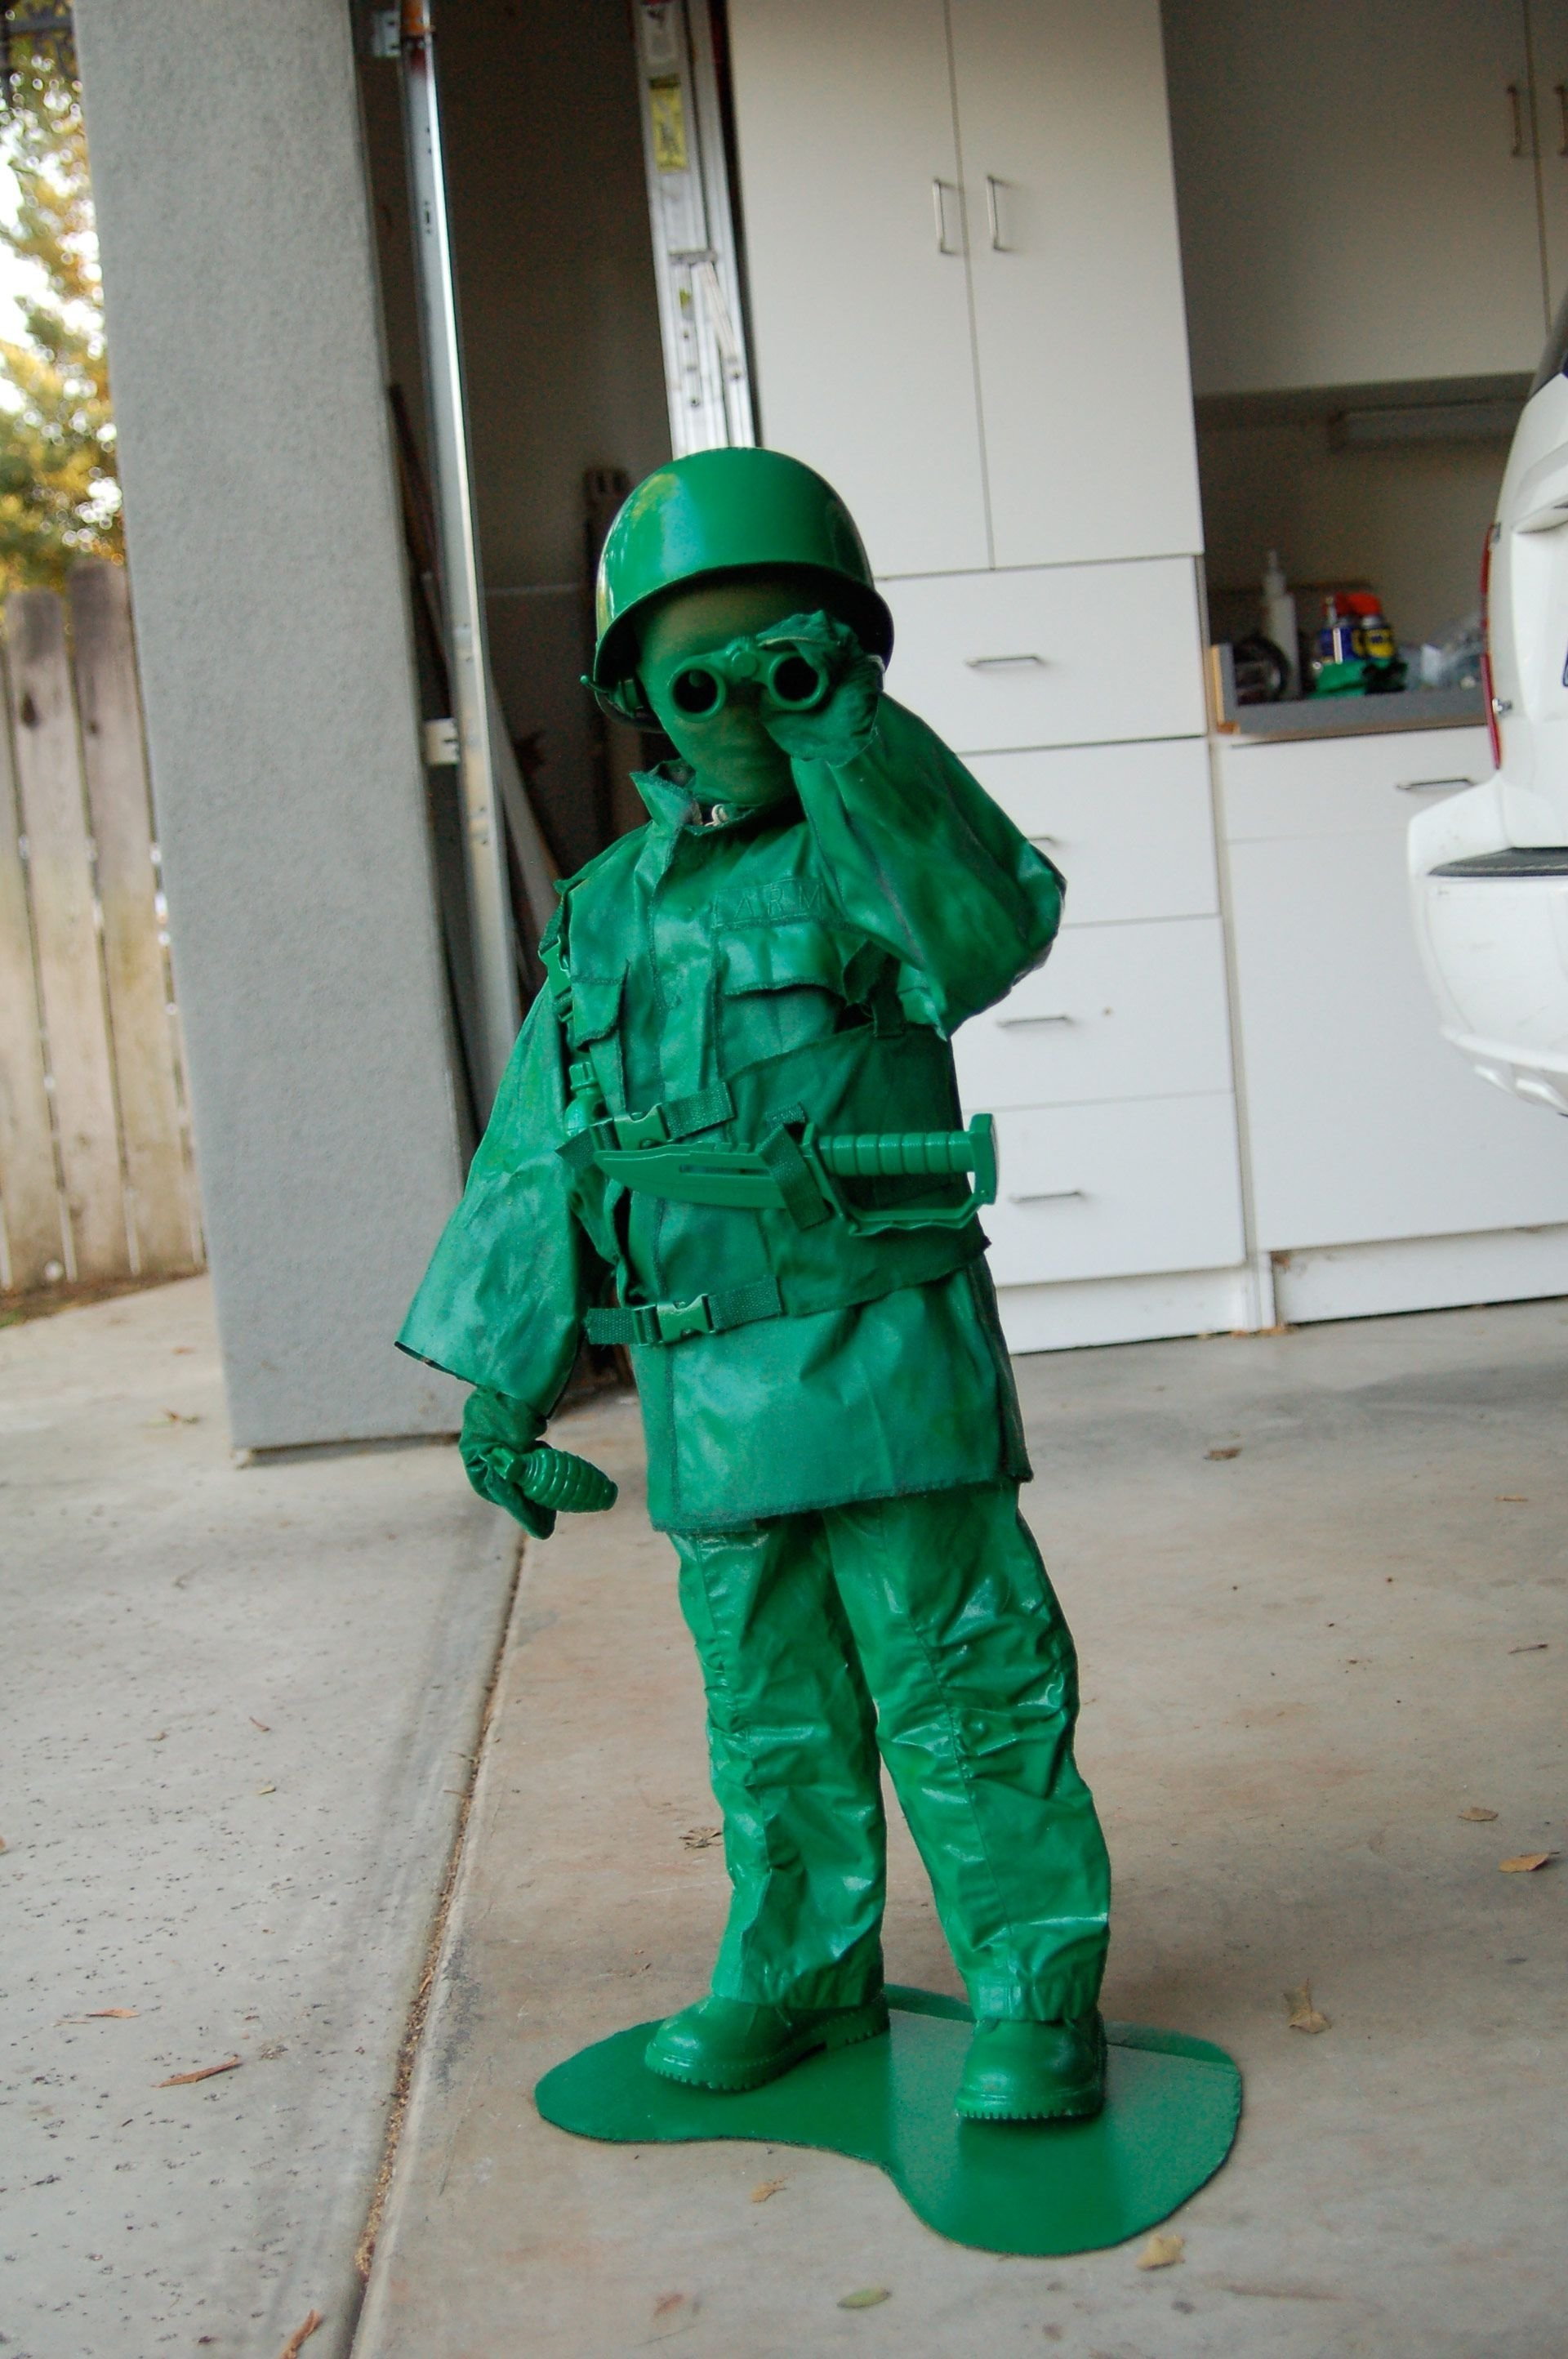 10 Gorgeous Halloween Costumes Ideas For Kids 62 homemade halloween costumes for kids easy diy ideas kids 2 2021